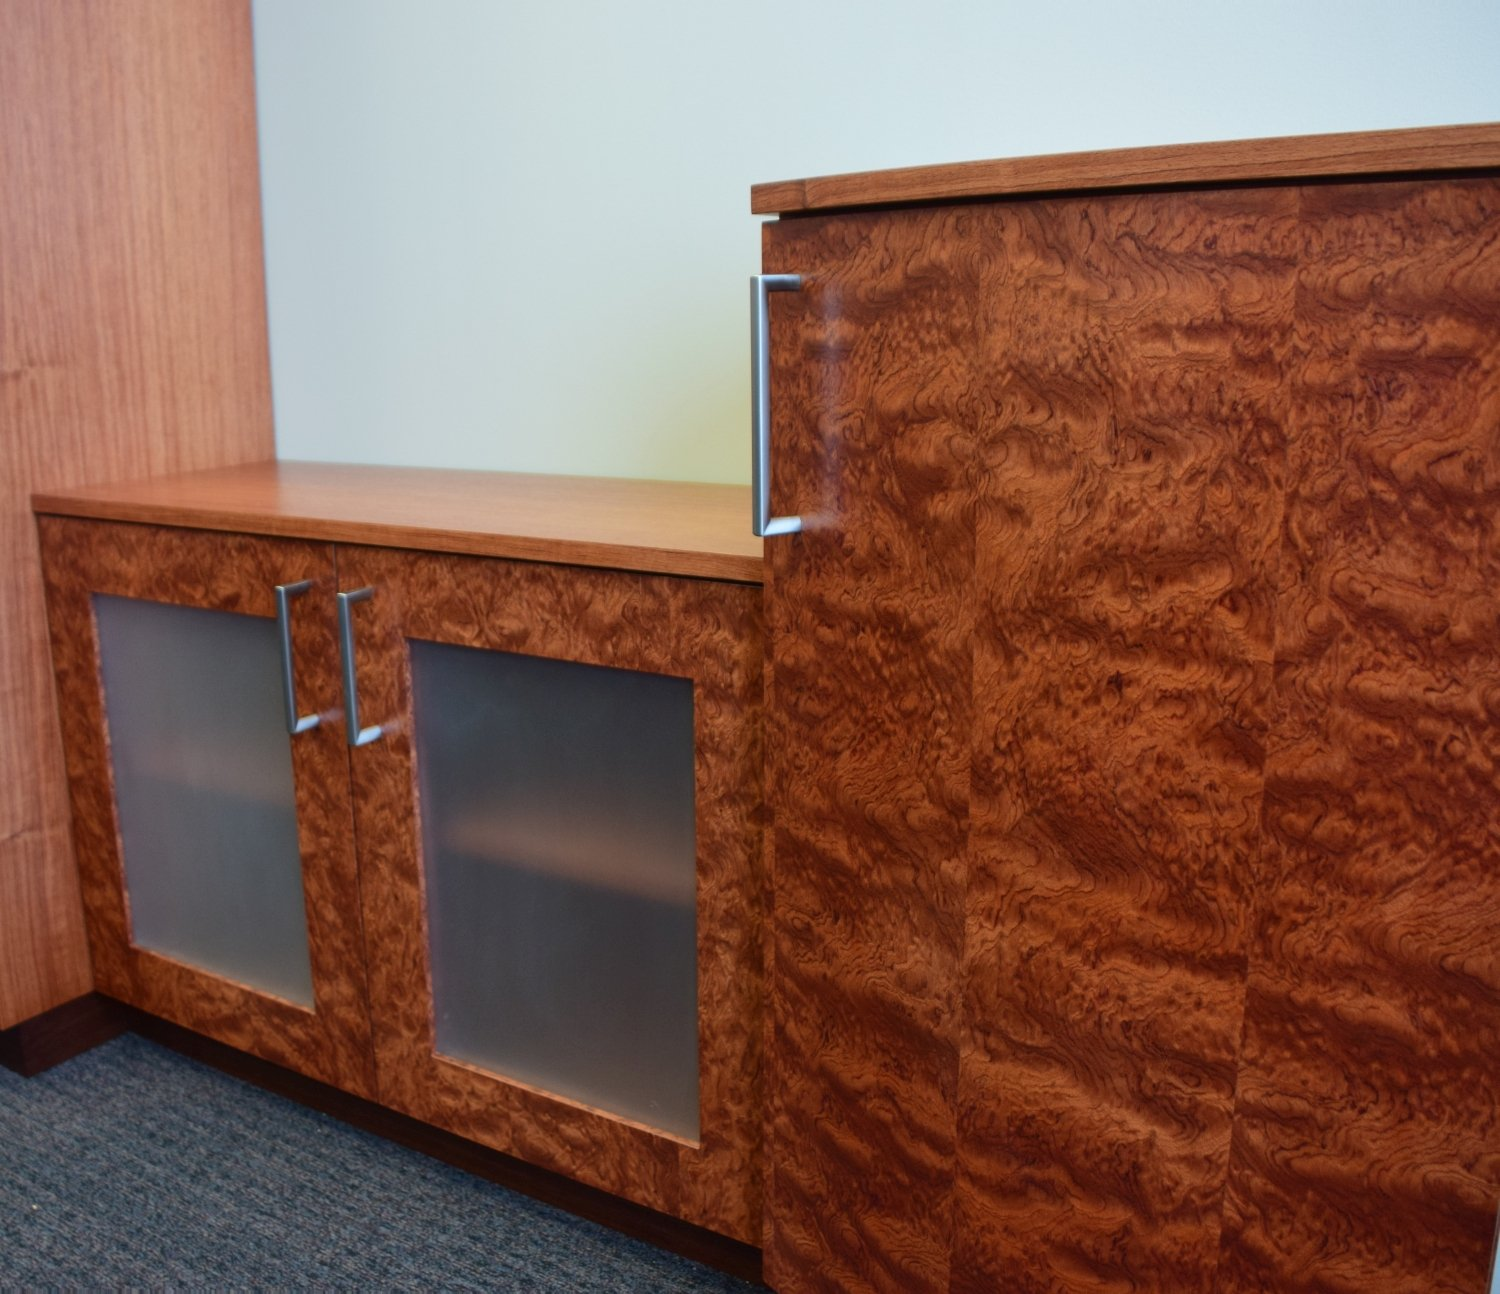 Custom Designed Home & Office furniture products image made & installed at Belak Woodworking LLC around  the area of Olathe, KS | Furniture Custom Closets & Skilled Tradesman in Woodworking KCMO (Kansas City, Missouri)